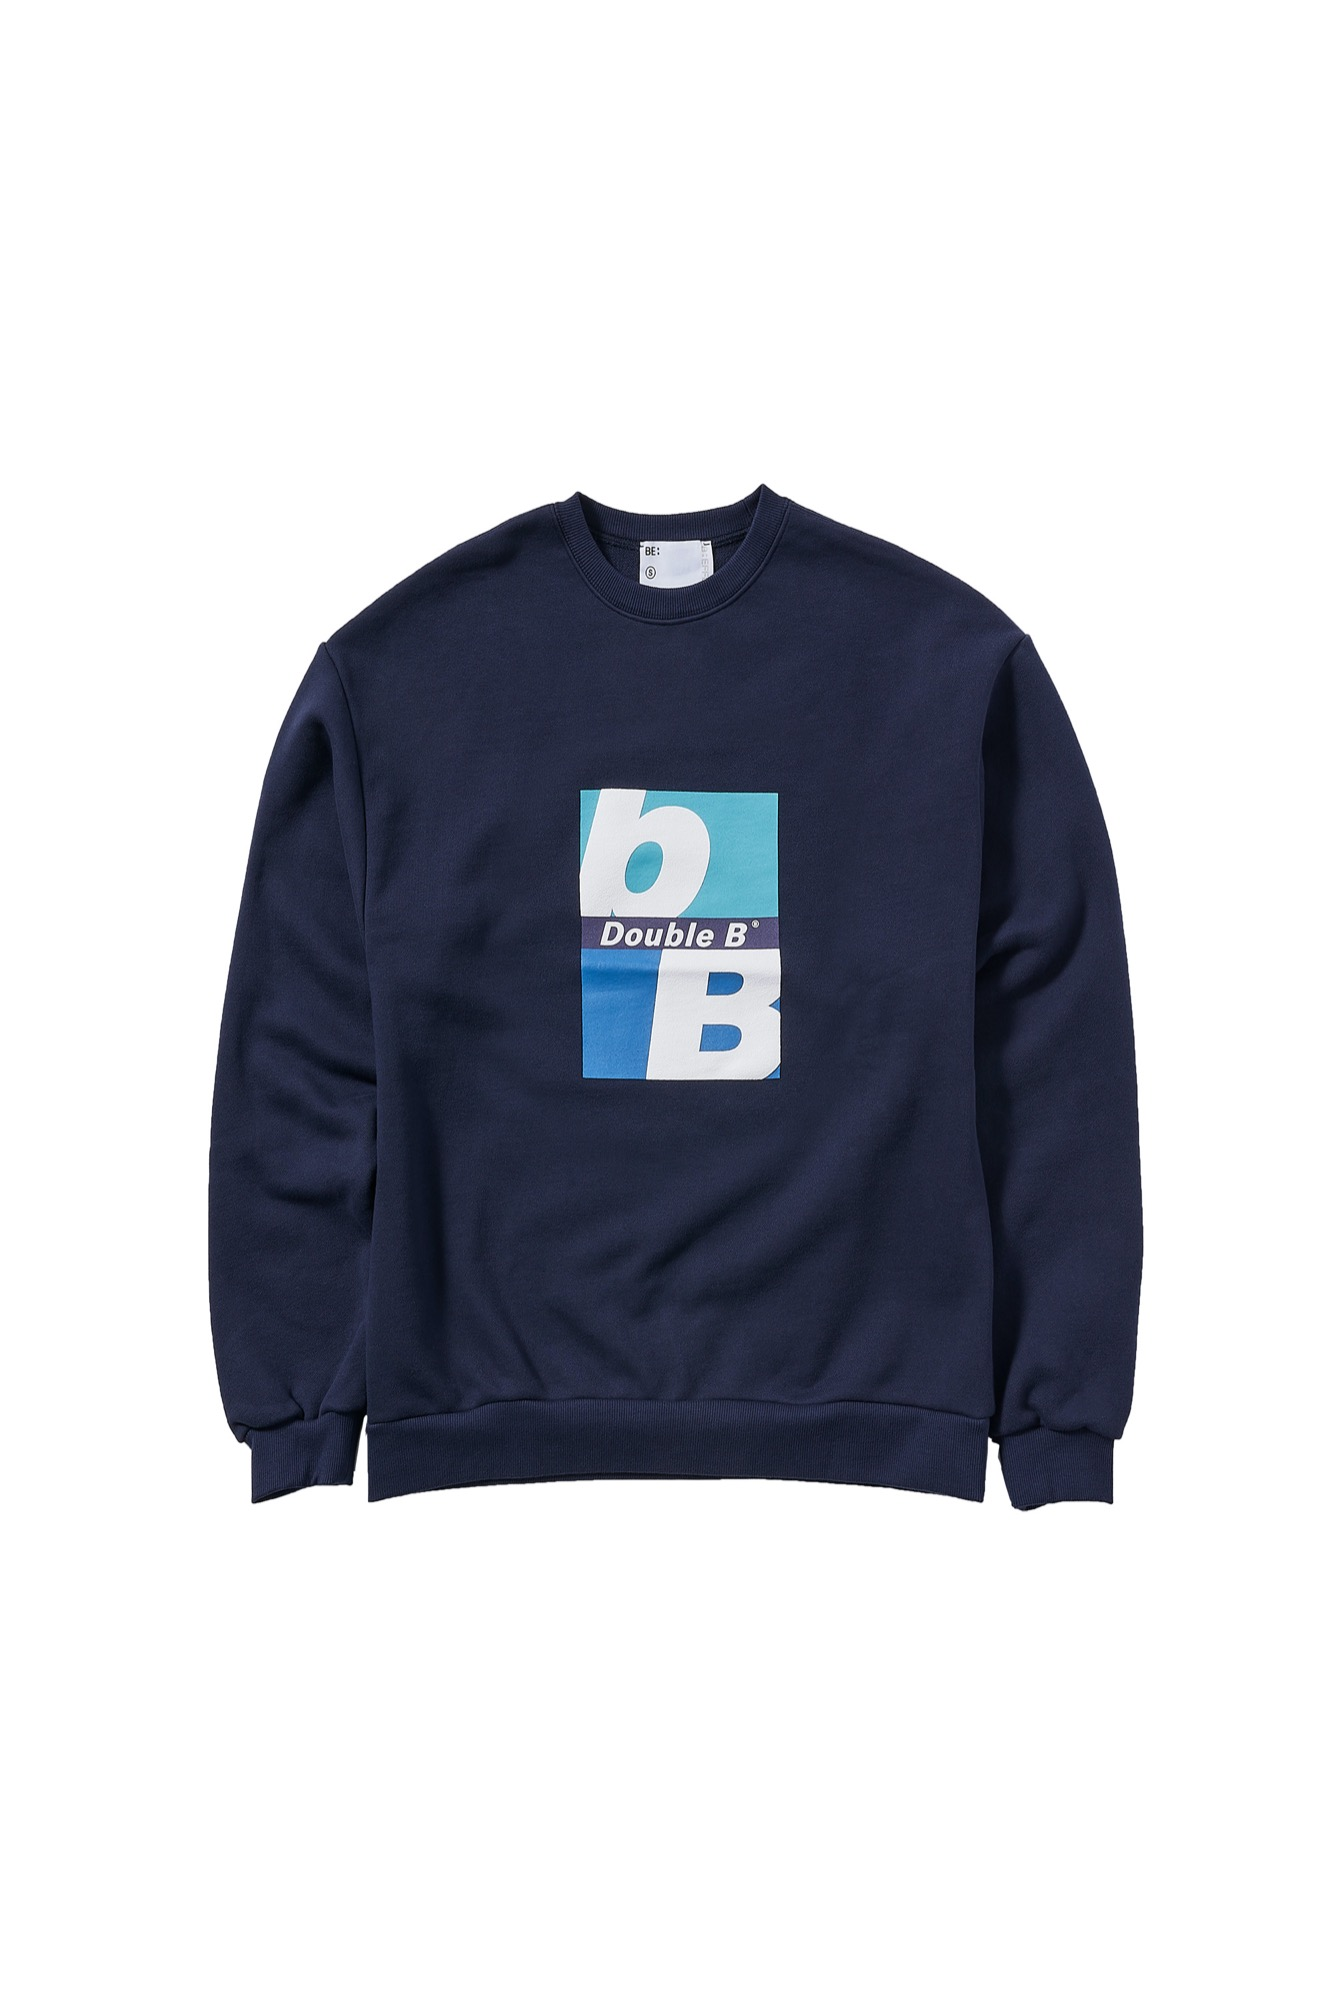 DOUBLE B SWEATSHIRT NAVY